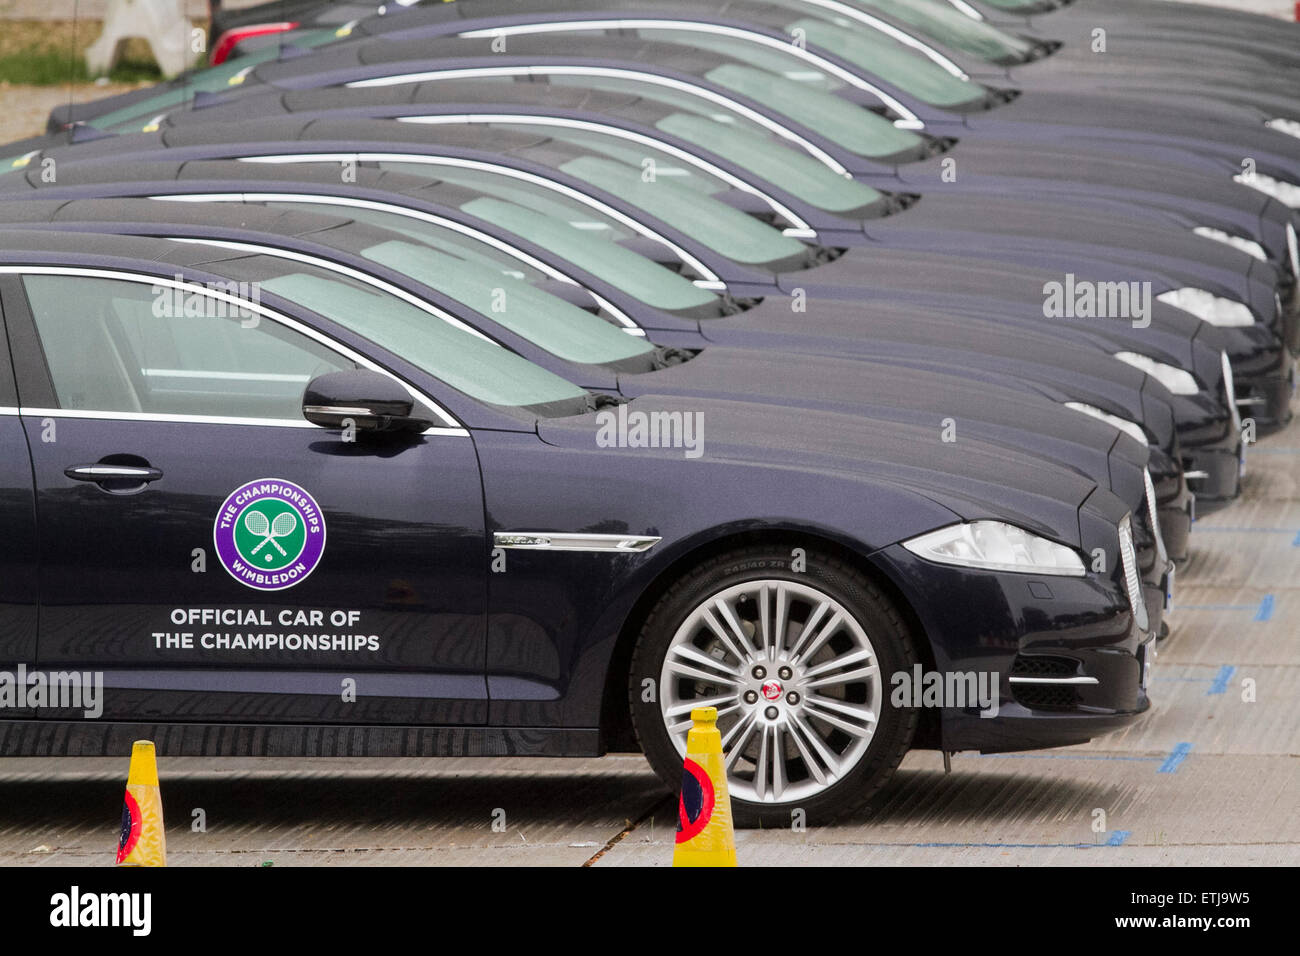 Wimbledon London, UK. 14th June, 2015. A row of official cars for ...